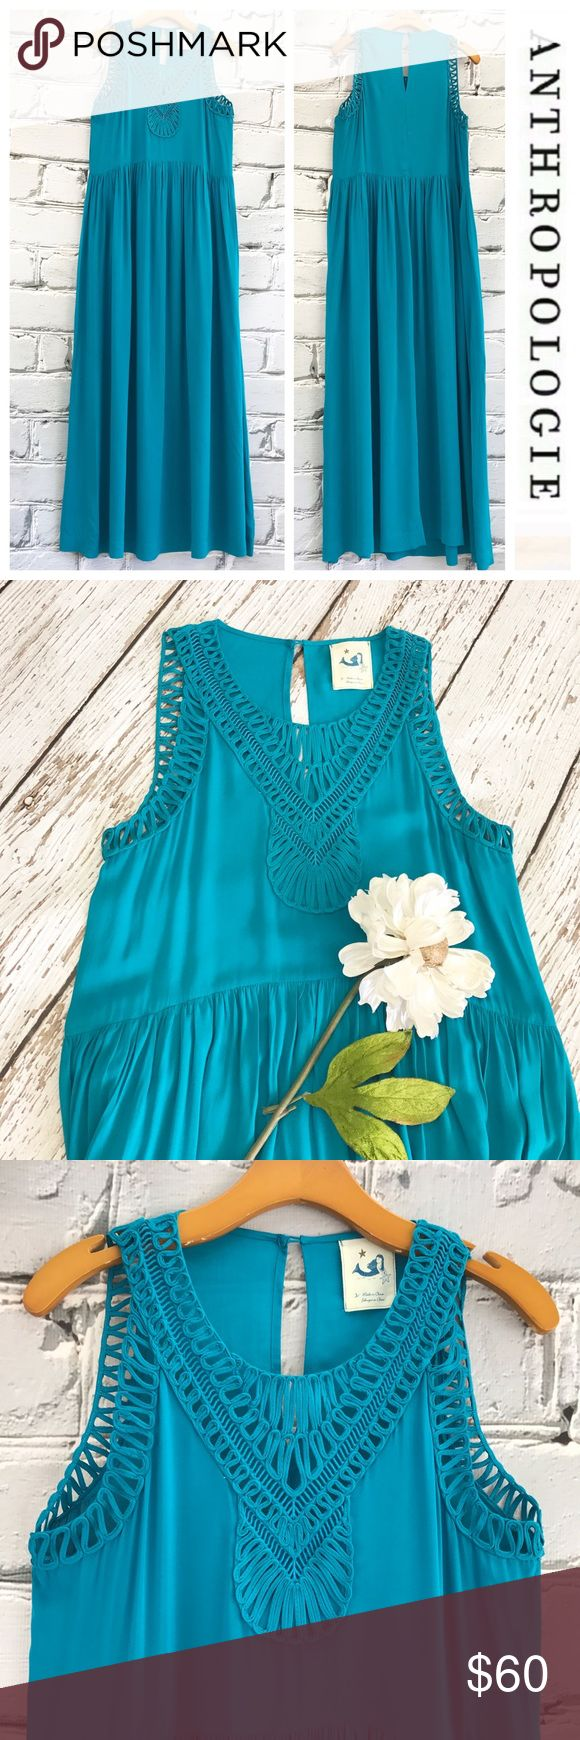 """💕SALE💕 Anthropologie Blue Maxi Dress Gorgeous 💕 Anthropologie Blue Maxi Dress with Pockets 59"""" from the top of the shoulder to the bottom 19"""" from armpit to armpit 100% Rayon. Super Soft and Gorgeous Color Anthropologie Dresses Maxi"""